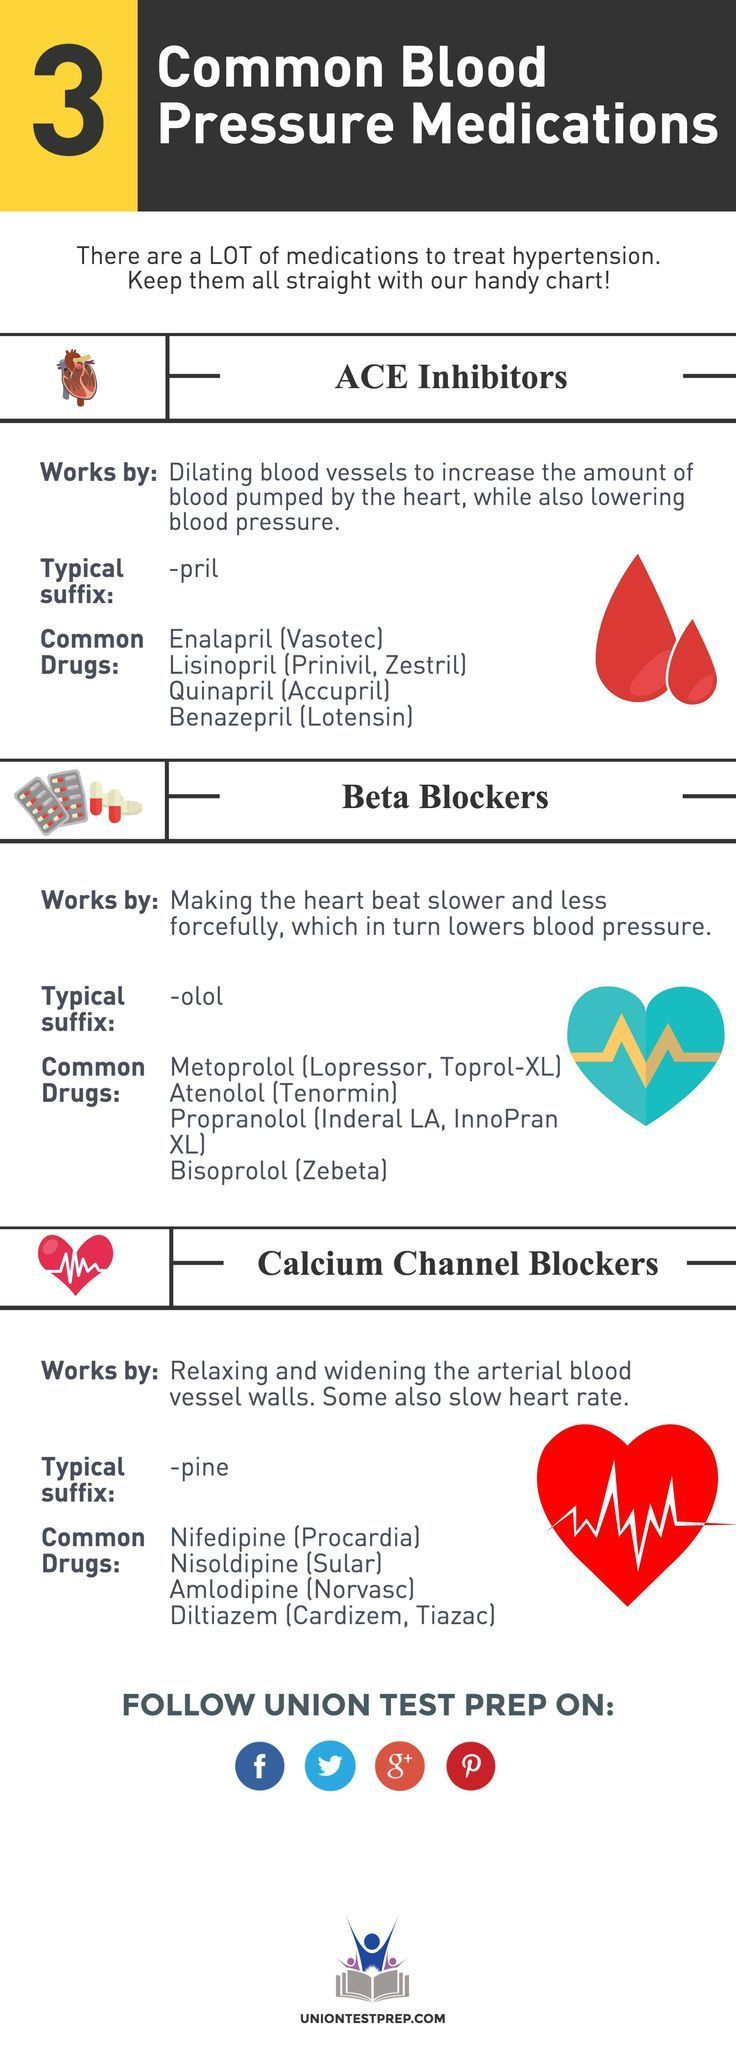 Common blood pressure medications every nurse should know! #BloodPressure